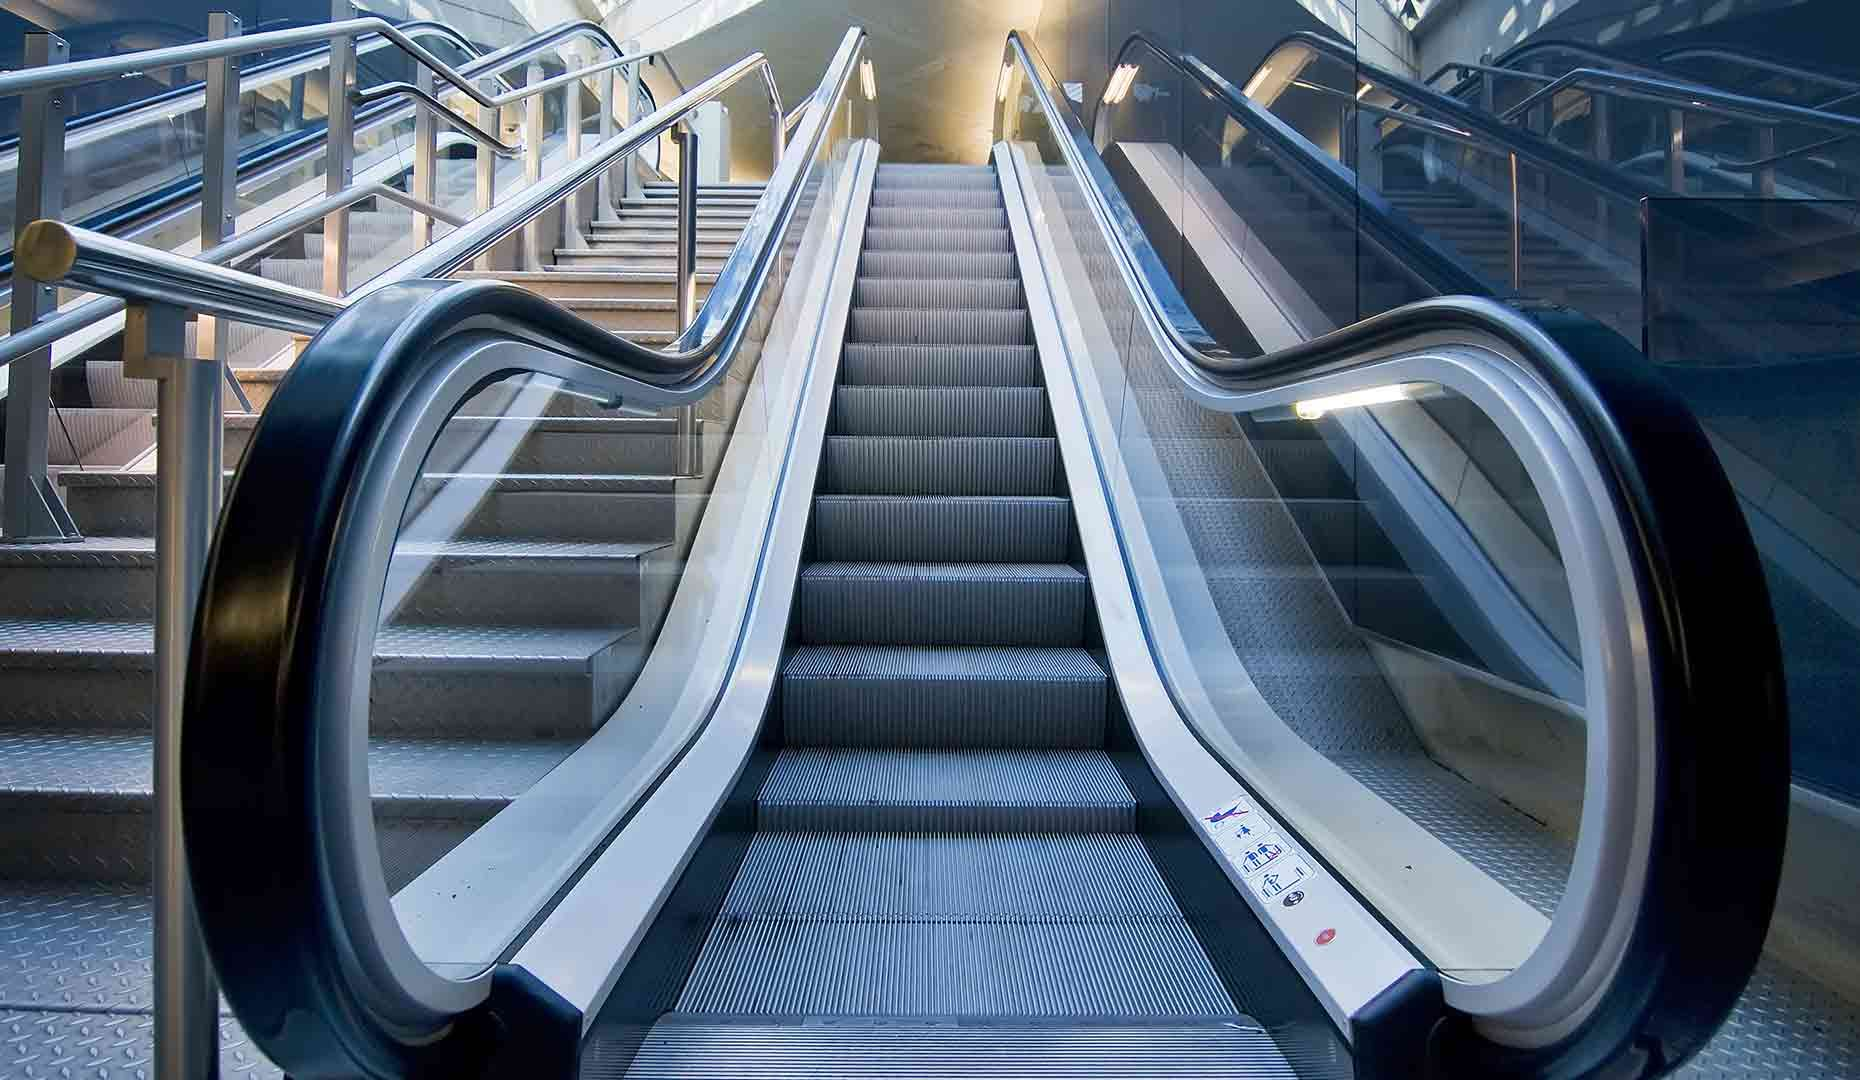 Elevator and Escalator Injuries